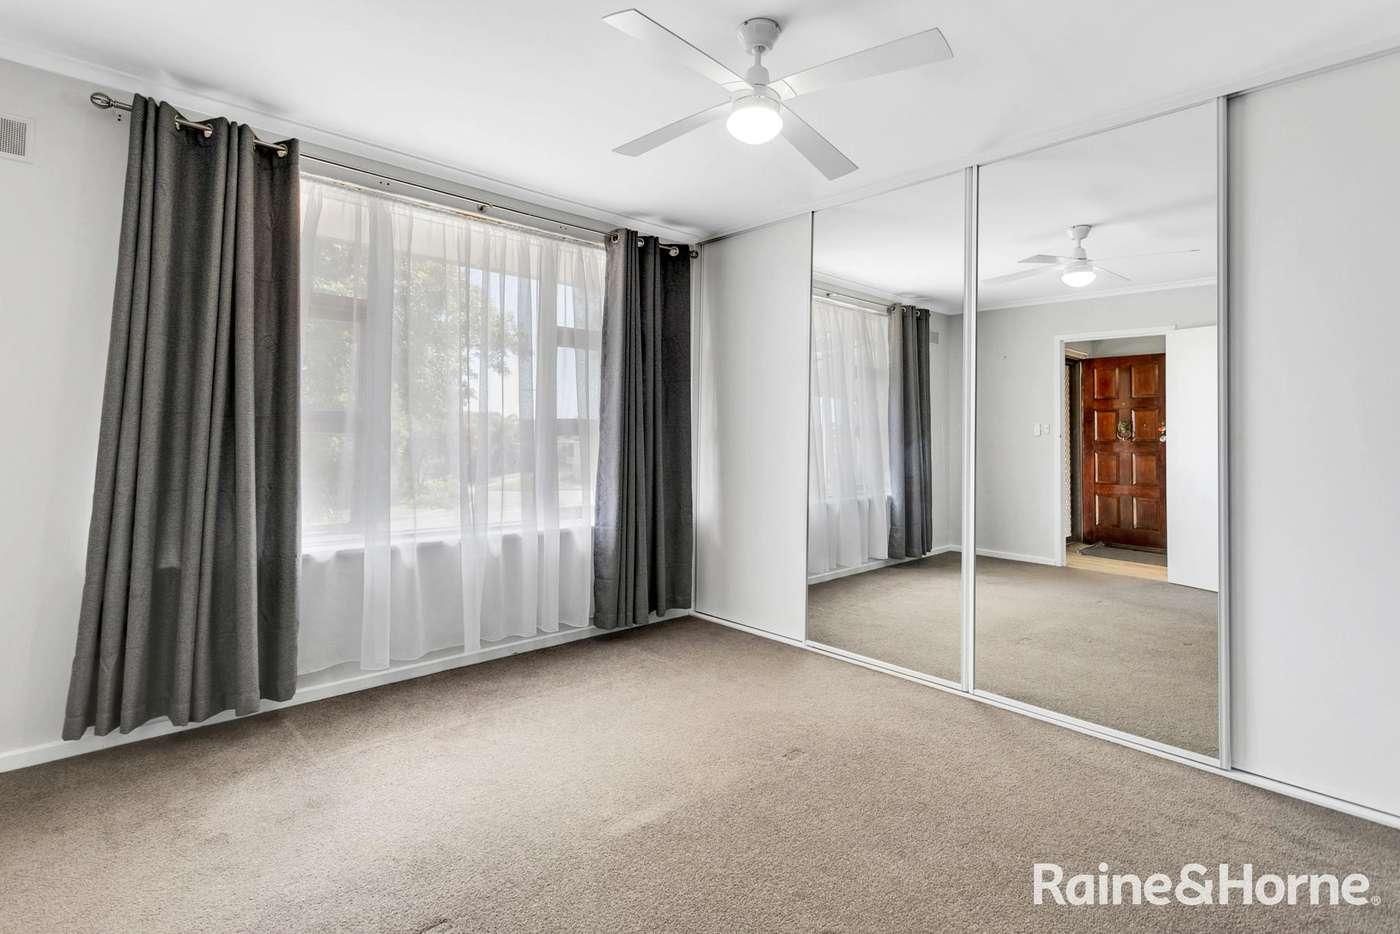 Fifth view of Homely house listing, 8 Pinchbeck Street, Morphett Vale SA 5162